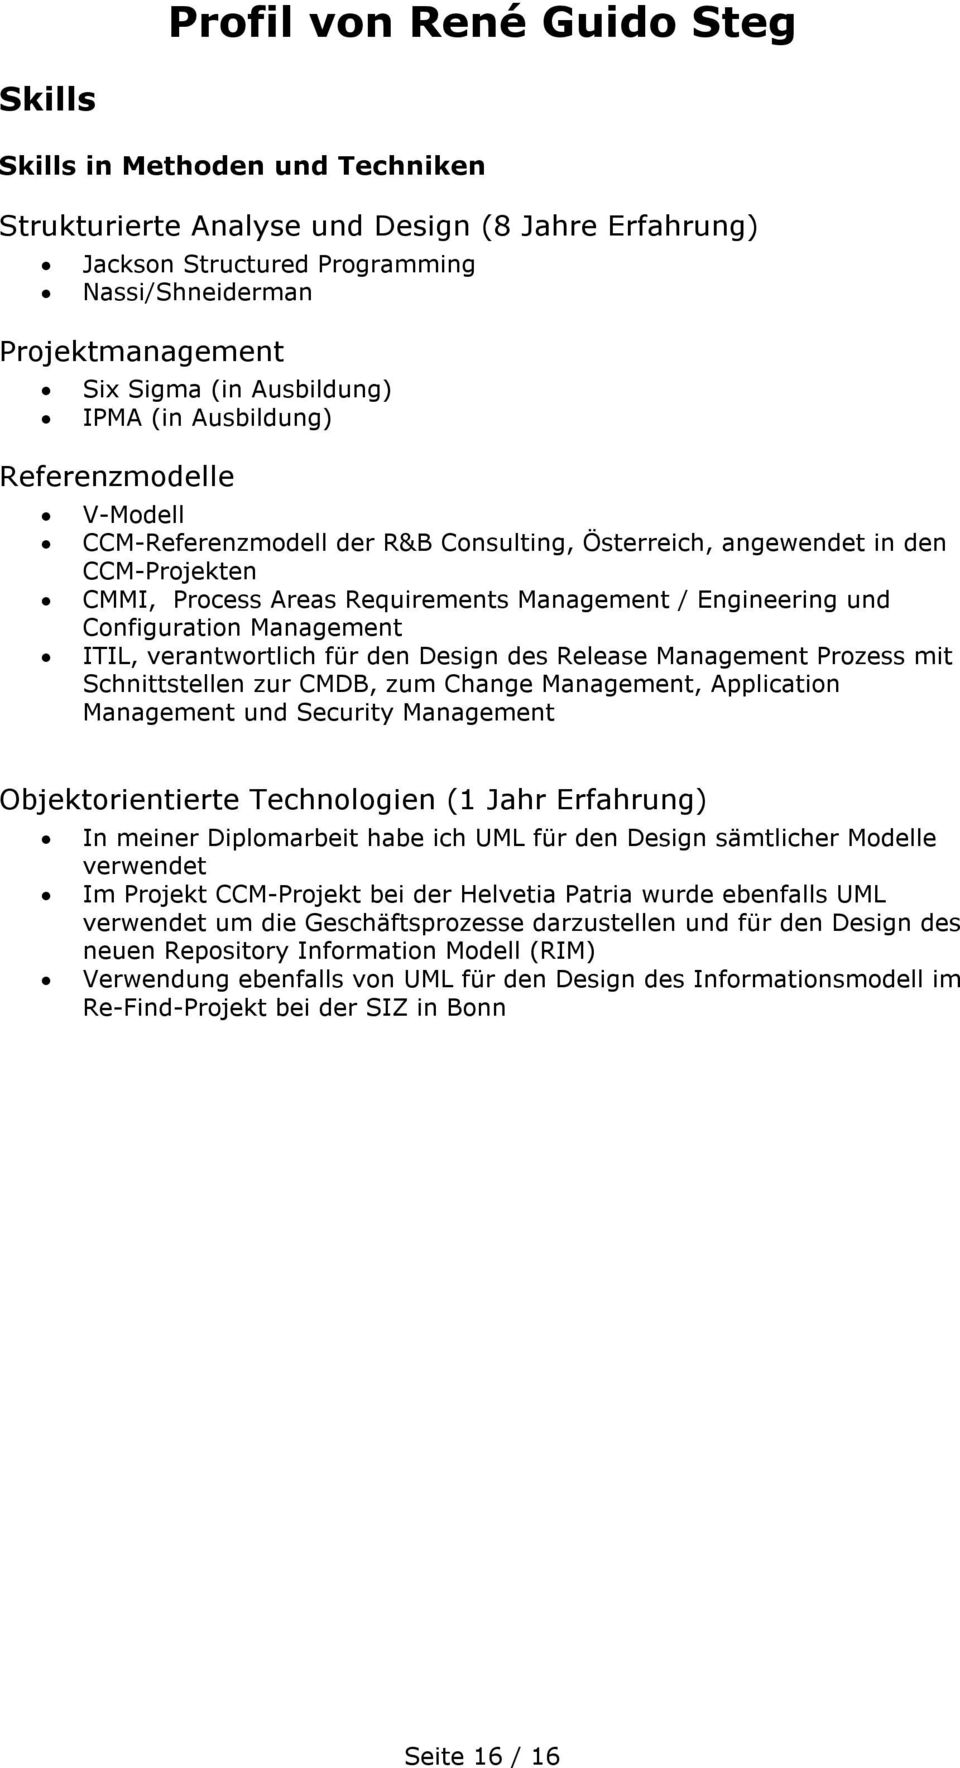 Management ITIL, verantwortlich für den Design des Release Management Prozess mit Schnittstellen zur CMDB, zum Change Management, Application Management und Security Management Objektorientierte